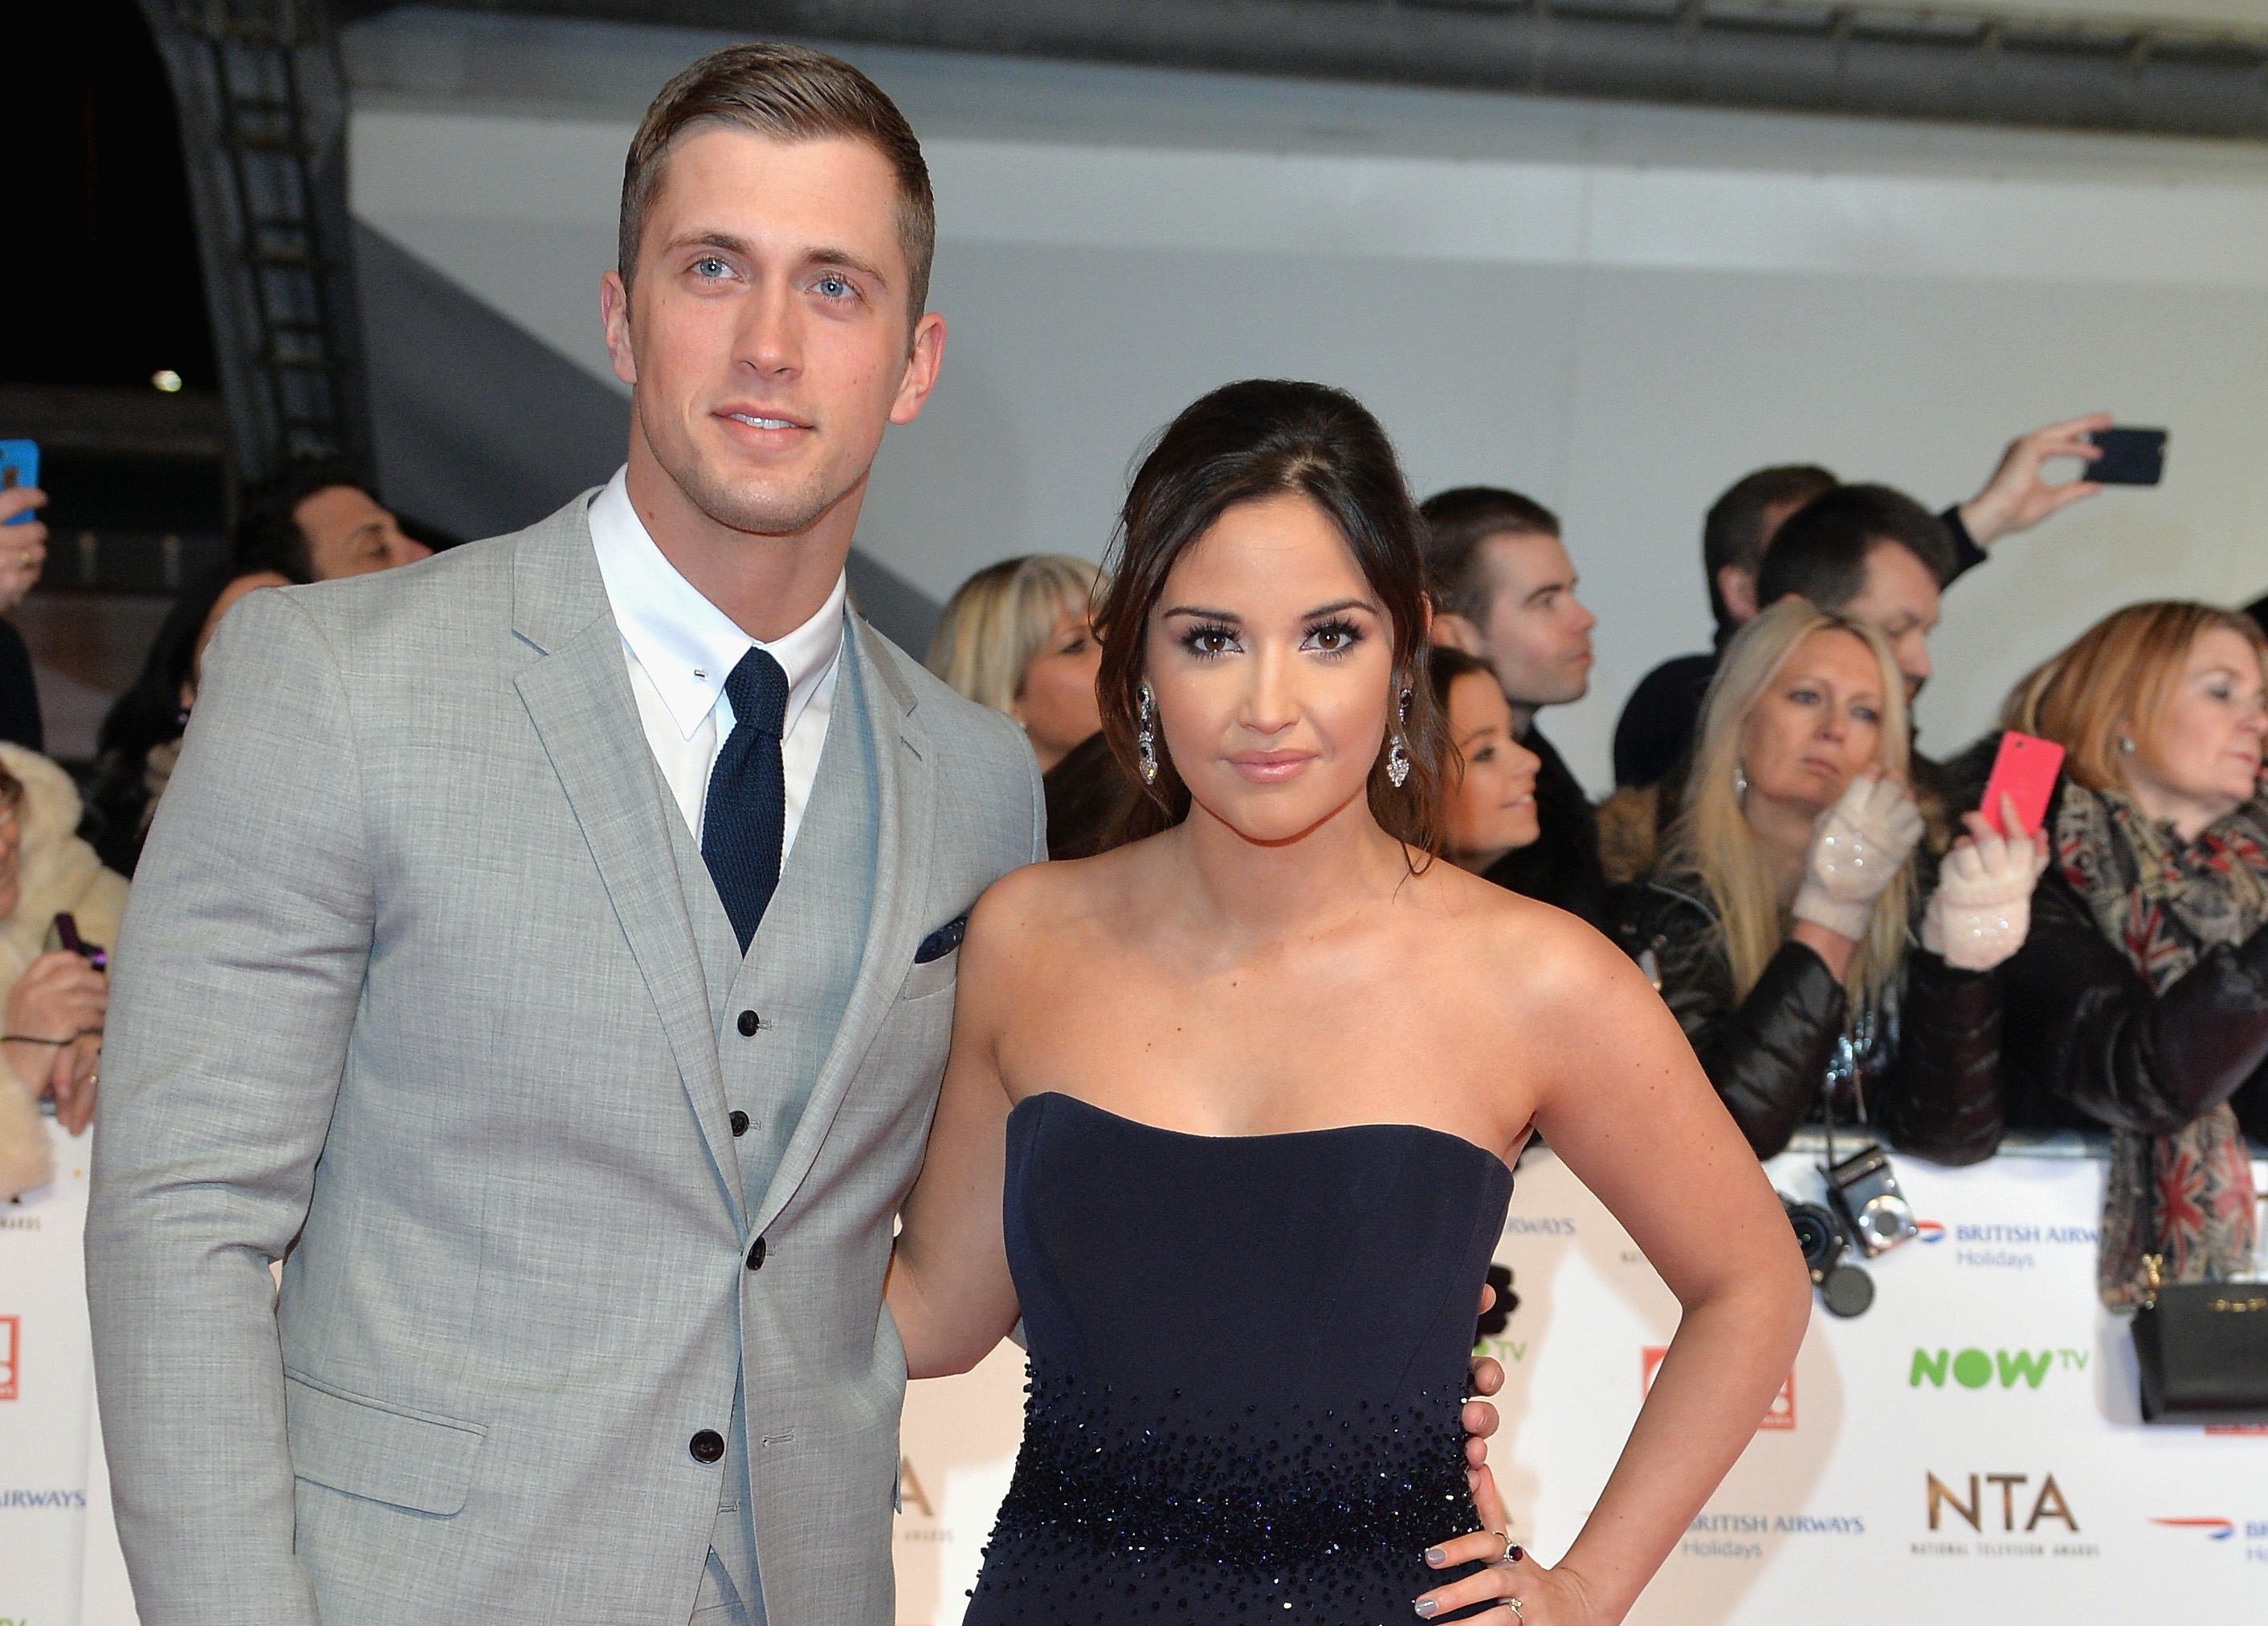 LONDON, ENGLAND - JANUARY 20:  Dan Osborne and Jacqueline Jossa attend the 21st National Television Awards at The O2 Arena on January 20, 2016 in London, England.  (Photo by Anthony Harvey/Getty Images)